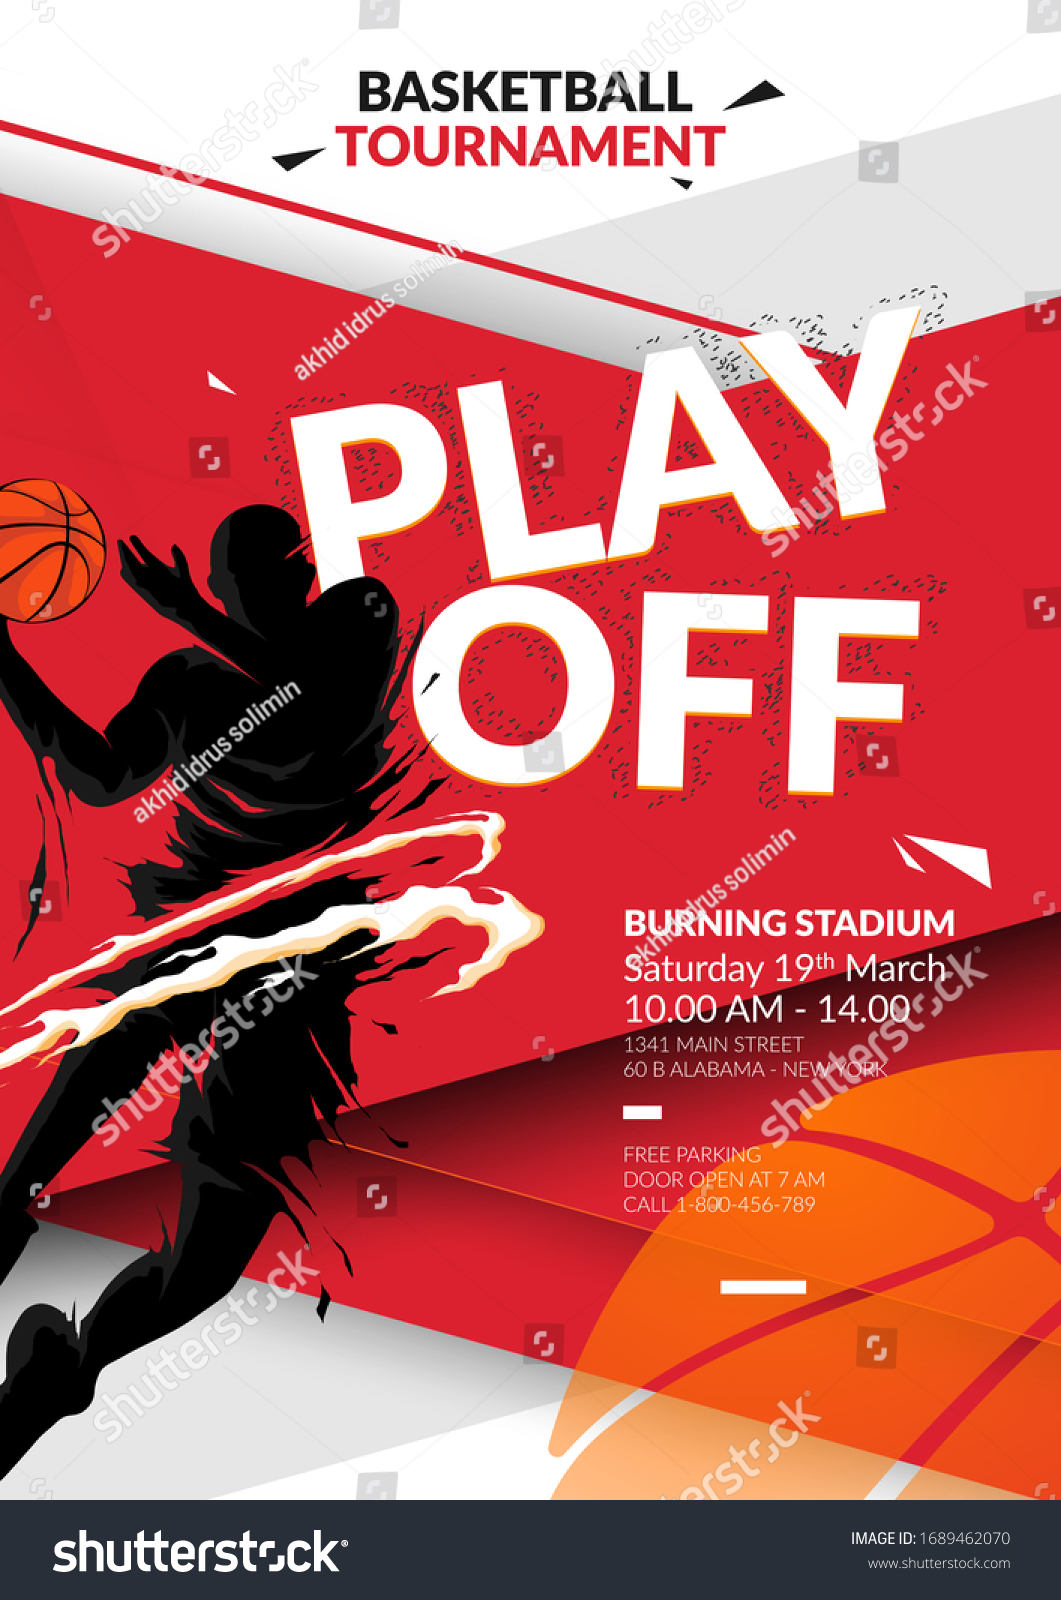 Free Basketball Tournament Flyer Template from image.shutterstock.com